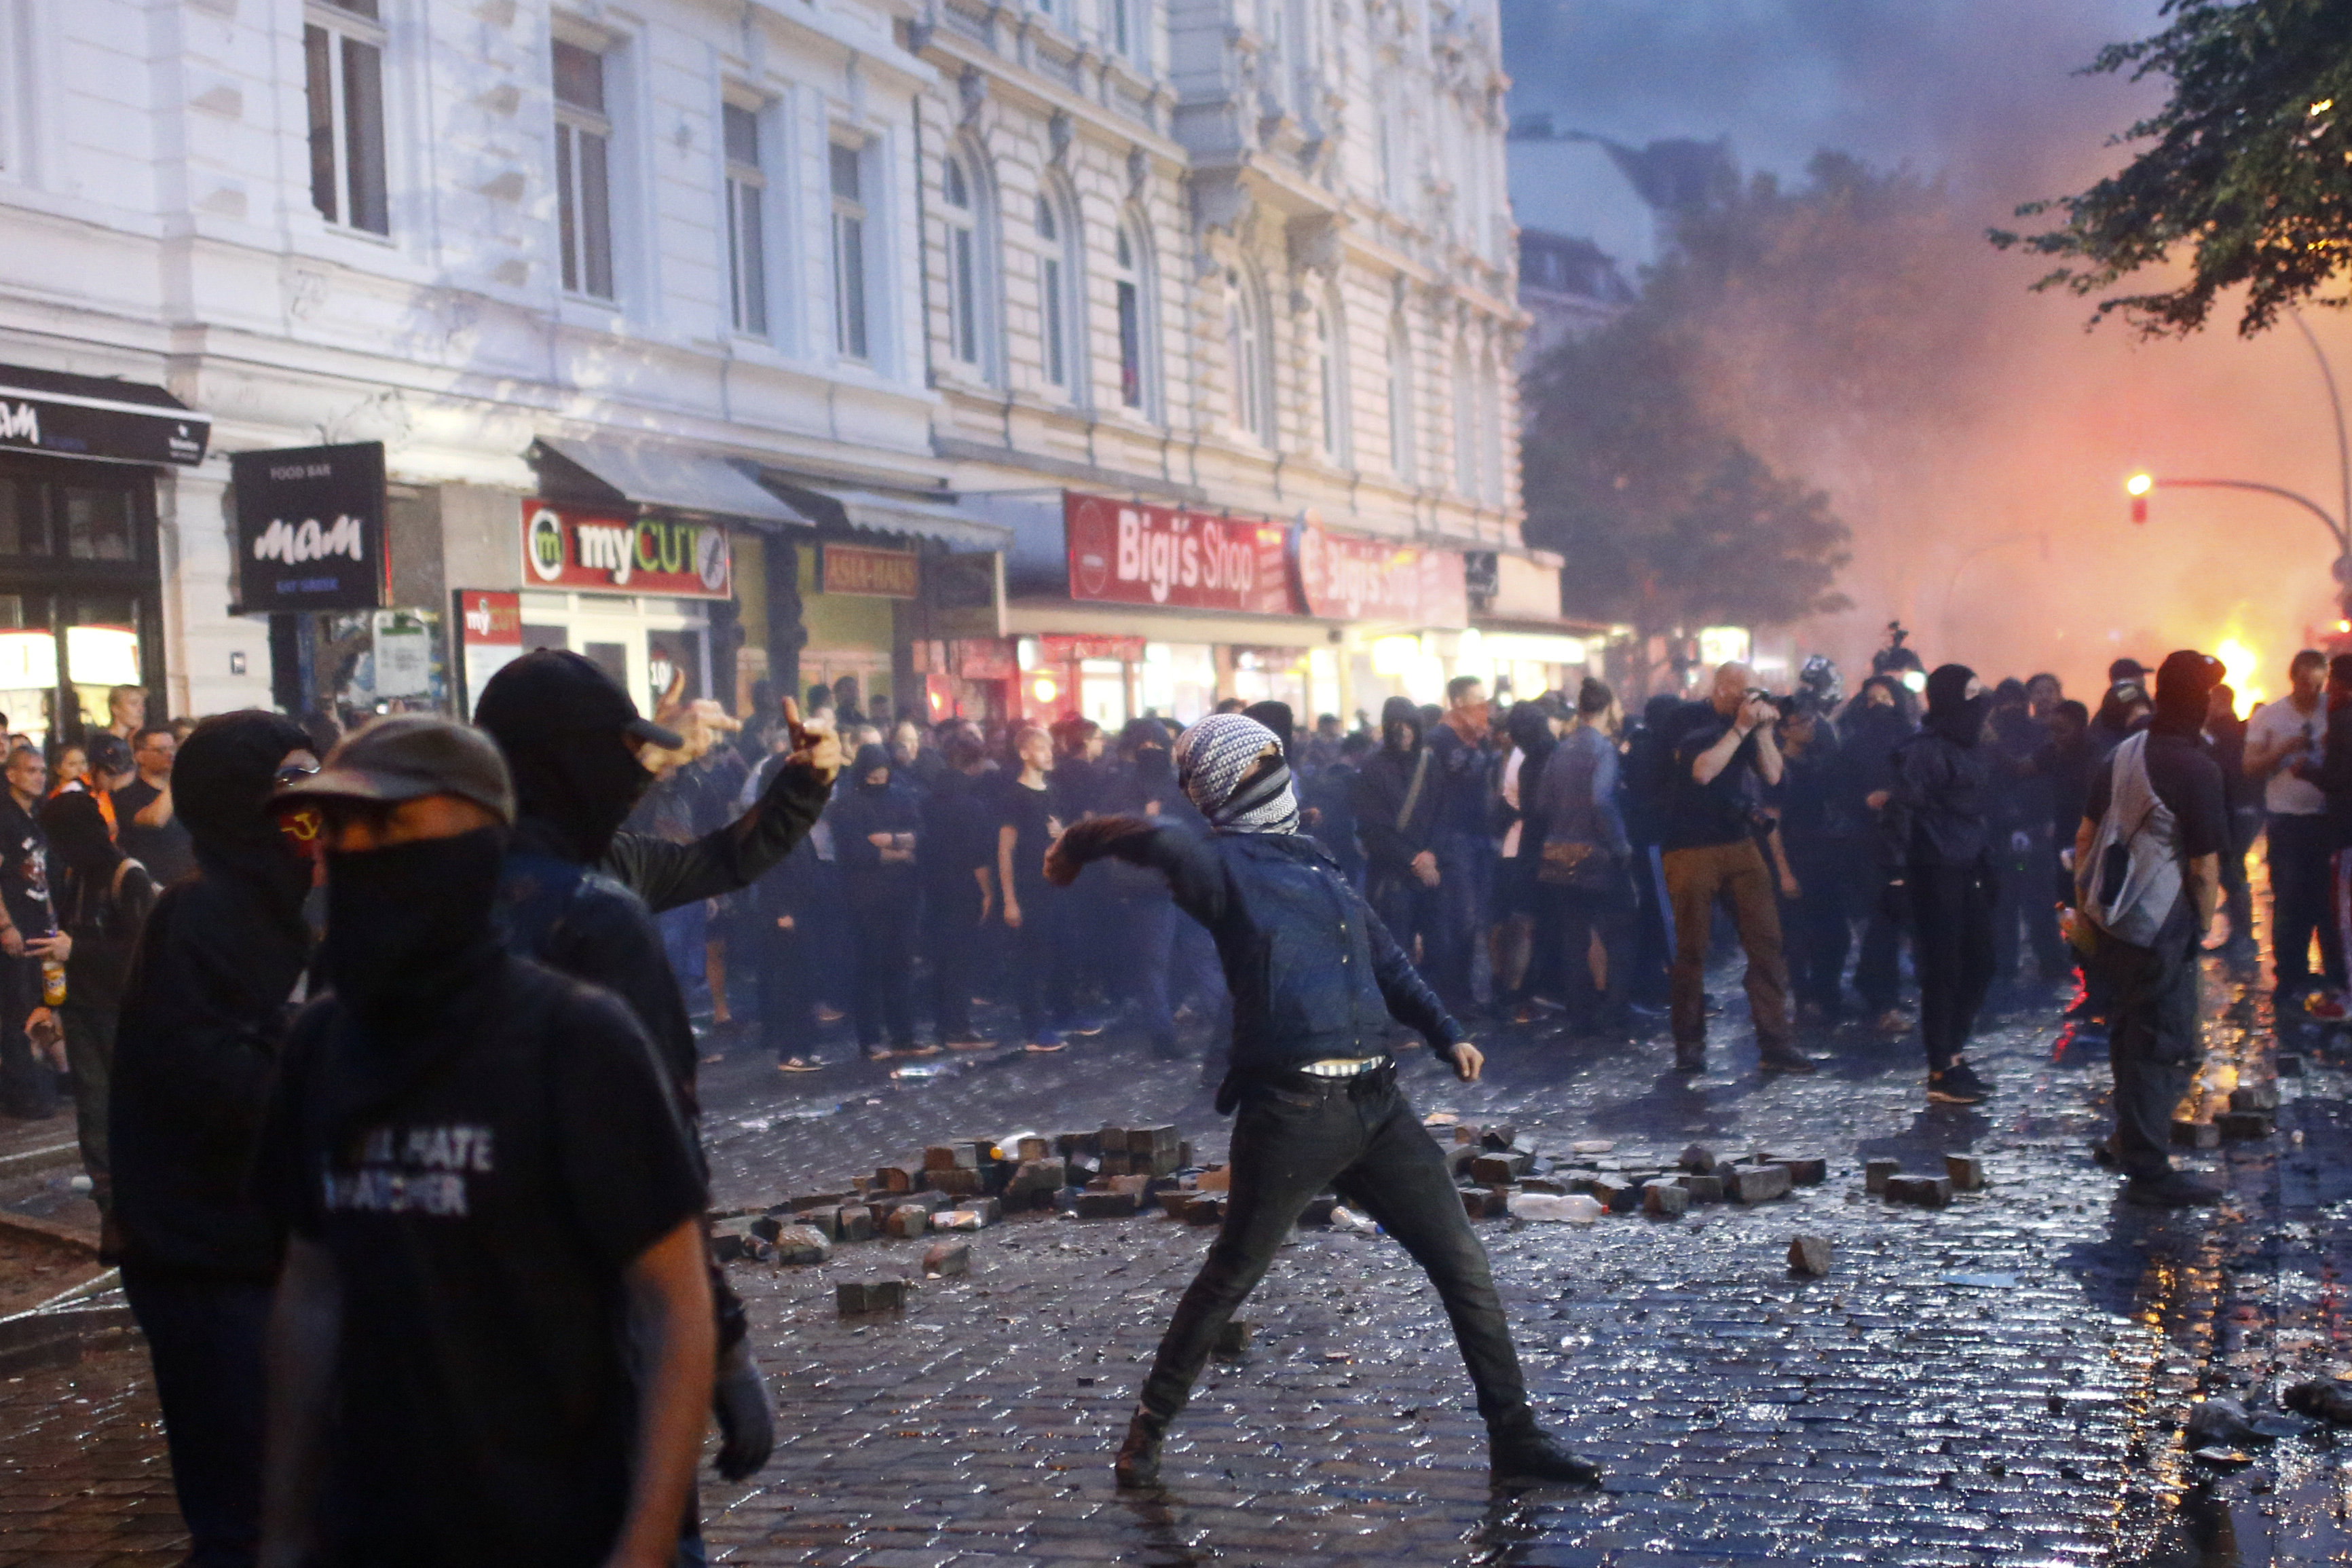 German police raid flats in hunt for G20 rioters